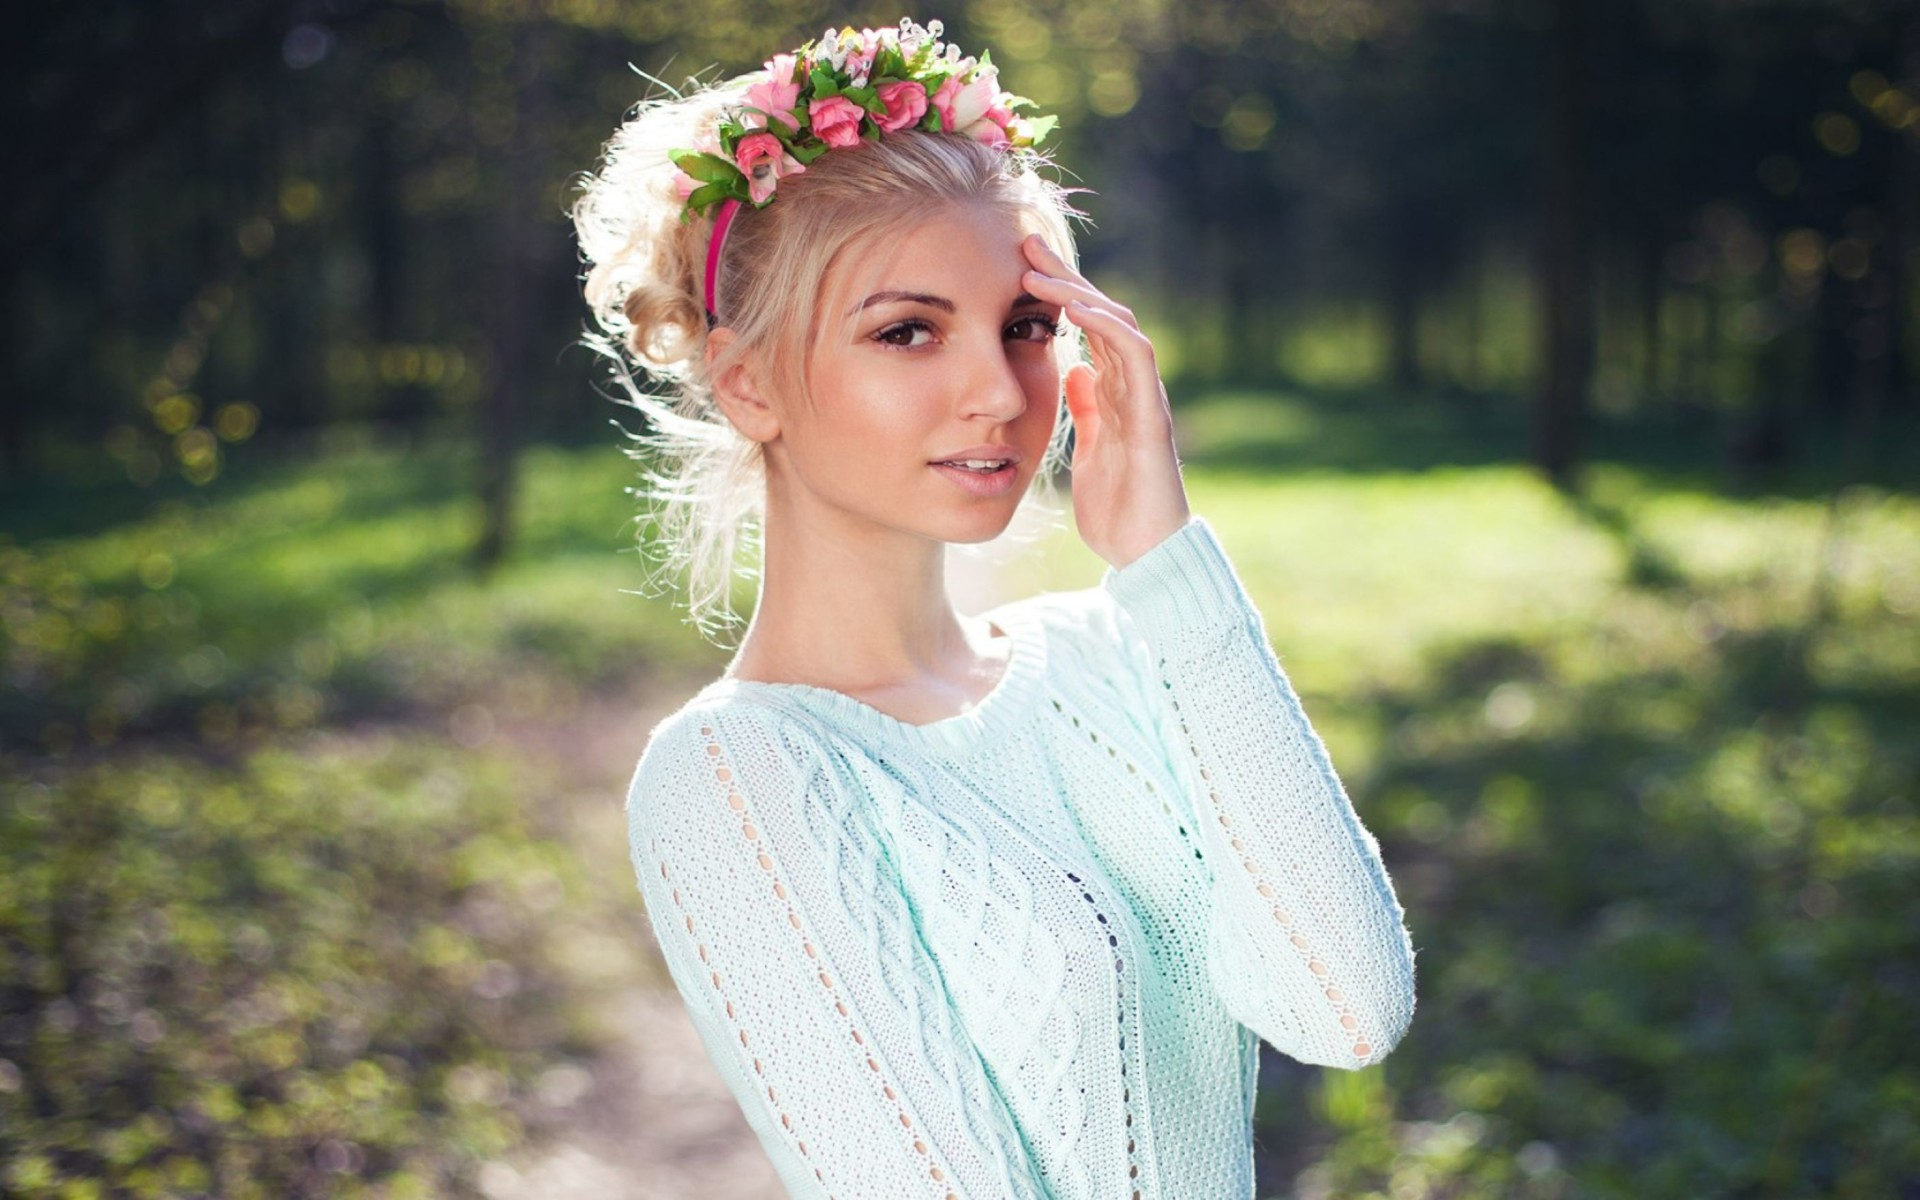 Girl With Lovely Hair Style Wallpaper